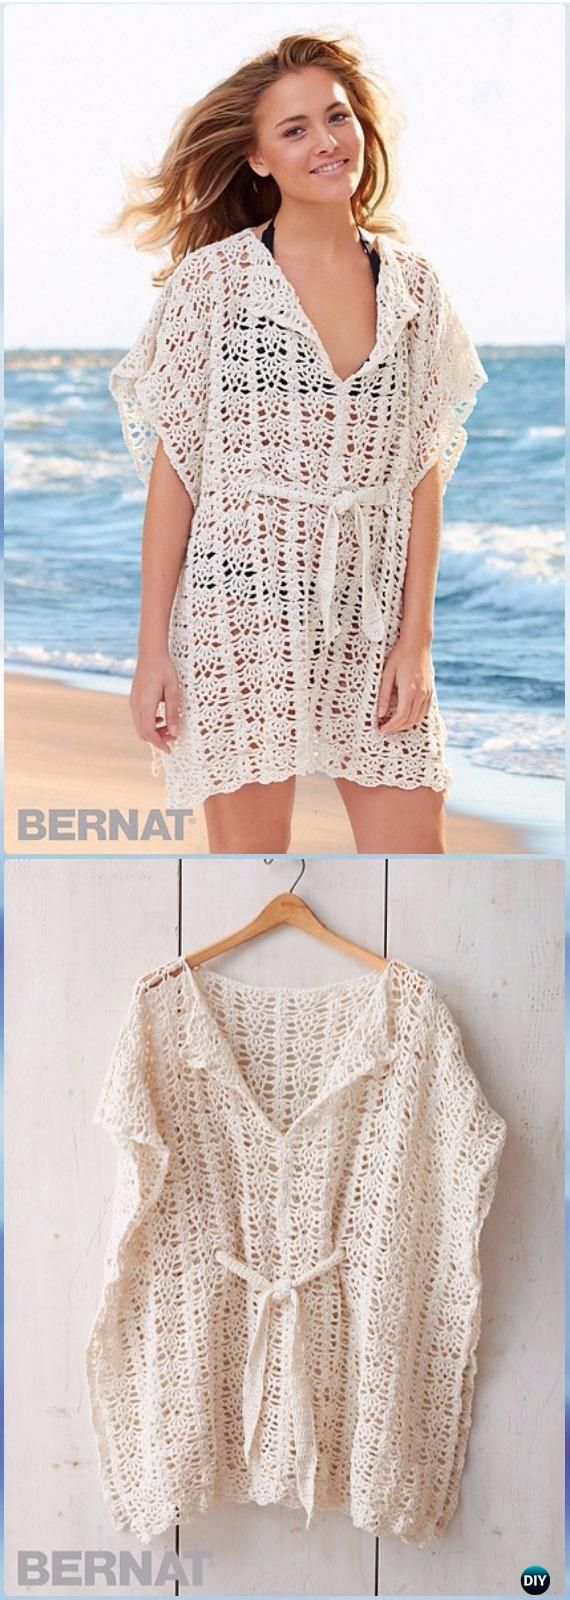 Crochet beach cover up free patterns for women beach covers crochet beach cover up free patterns for women bankloansurffo Images